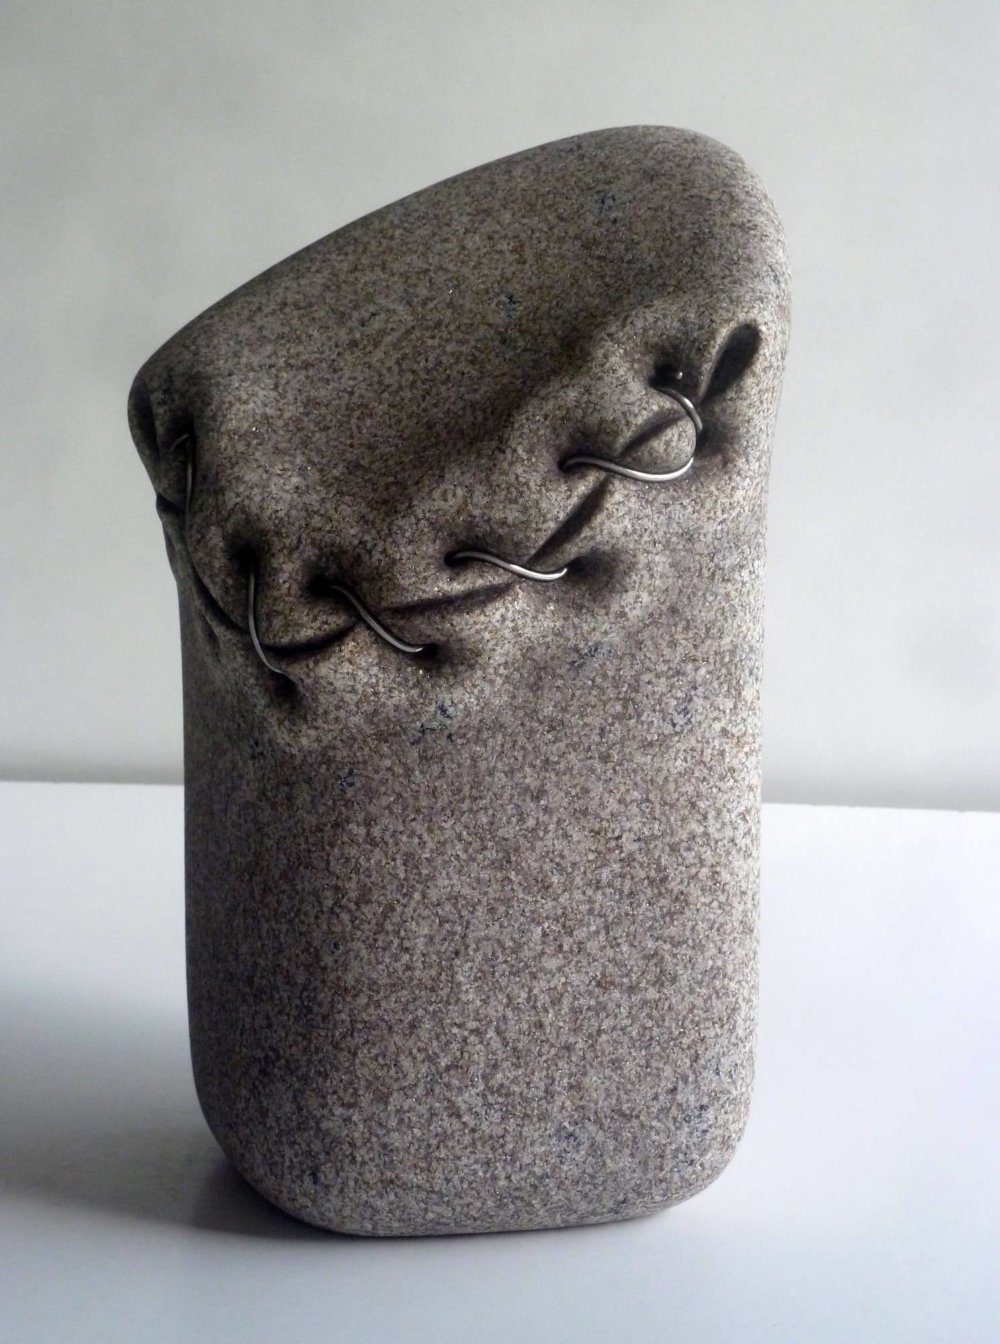 Extraordinary Hand Carved Stone Sculptures That Look Like Theyre Made Of Soft Putty By Jose Manuel Castro Lopez 8